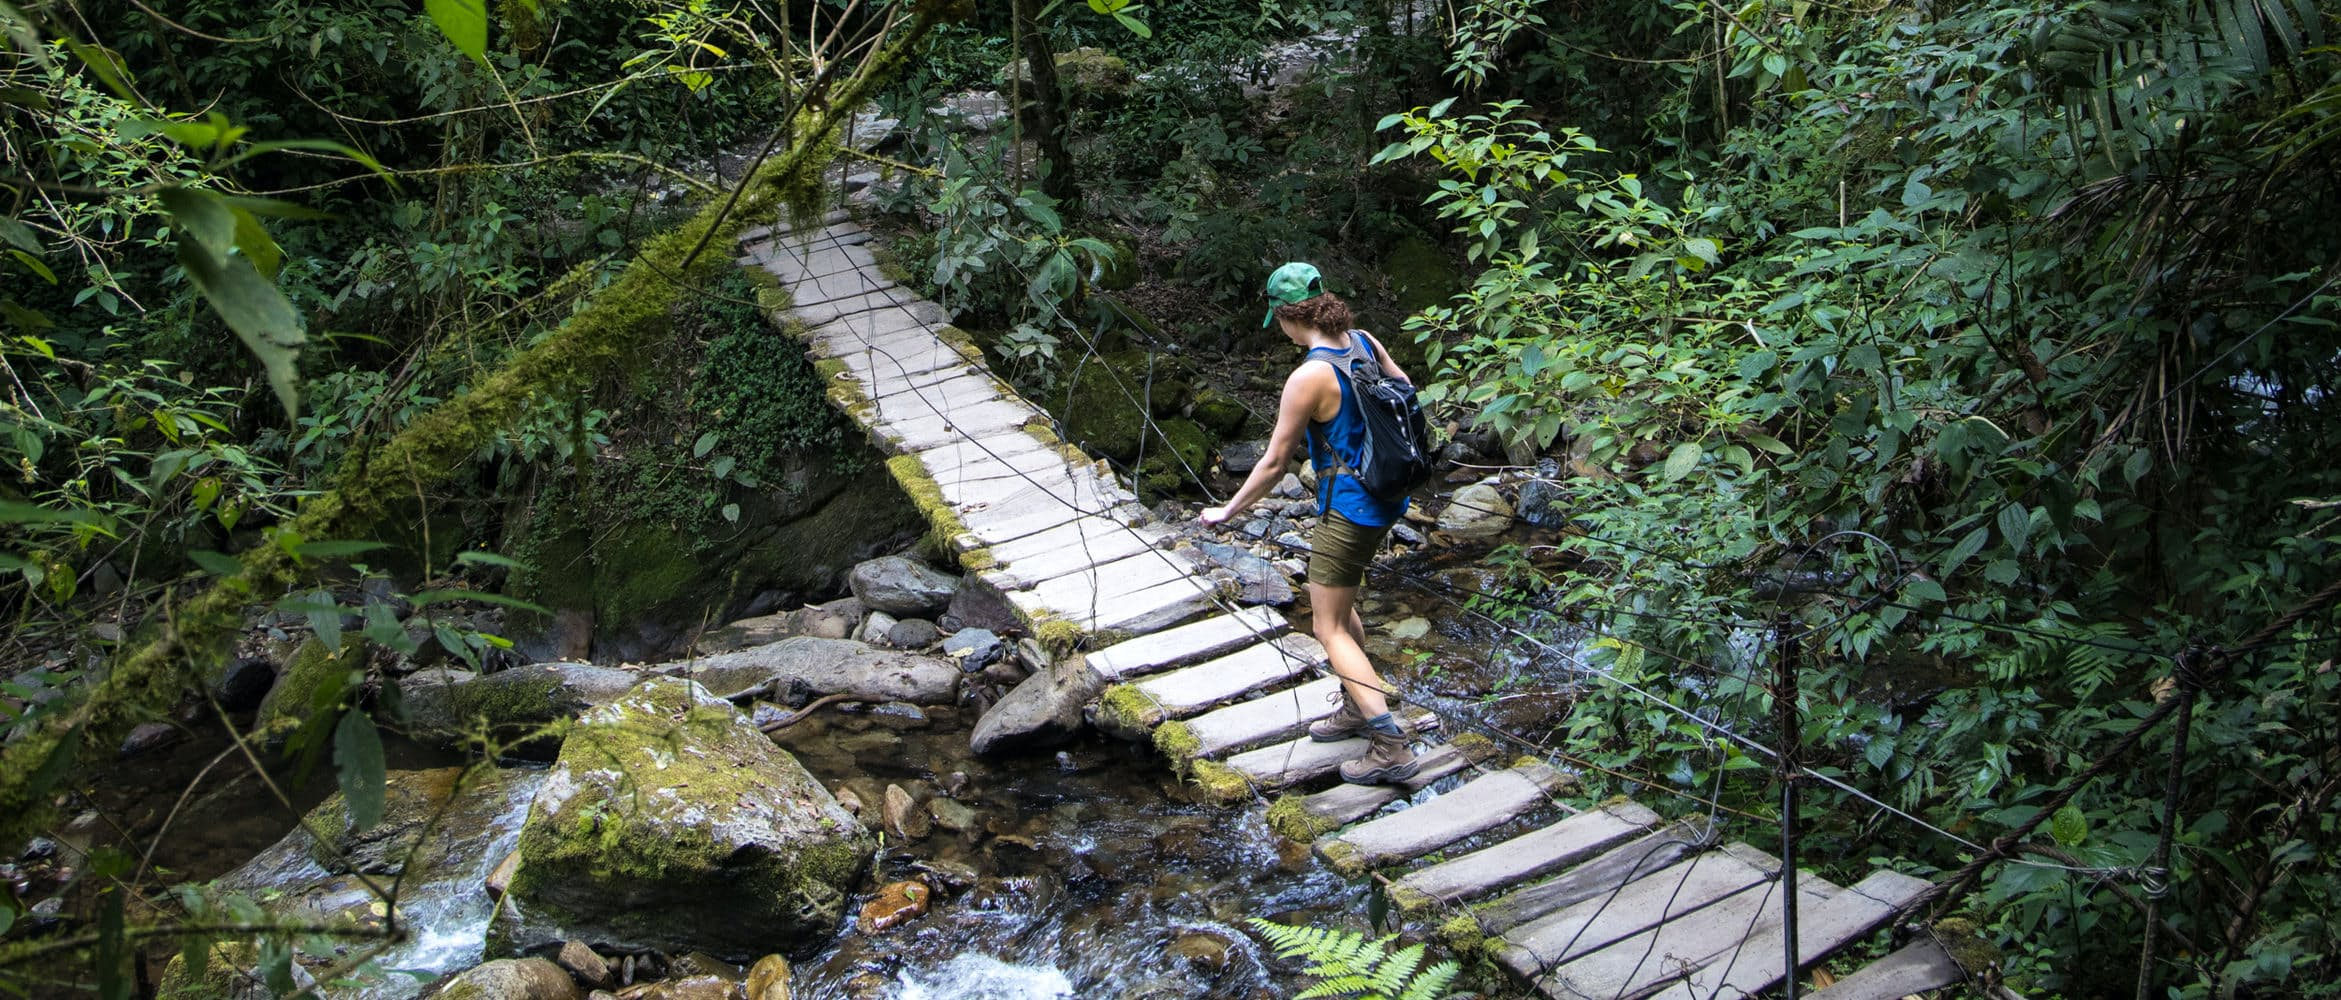 Featured 2x colombia outdoor destination.jpg?ixlib=rails 2.1